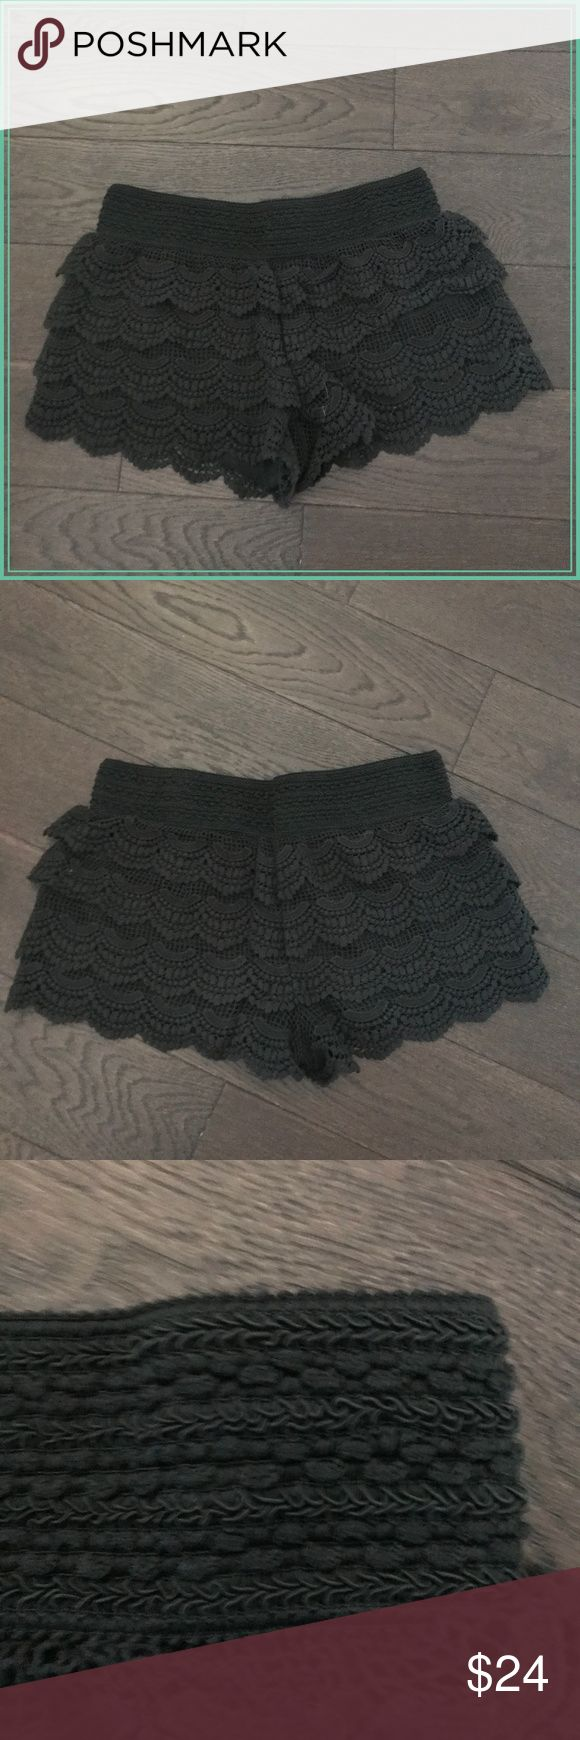 """Jolt Black Lace Crochet Shorts Size M Cute and trendy black crochet shorts, these looks great on just about any age and body type Fully lined, very stretchy waist (fits me as a size 6/8 comfortably) Measurements: waist 14"""" (elastic band), length 11"""" **Please read first 2 comments** Jolt Shorts"""